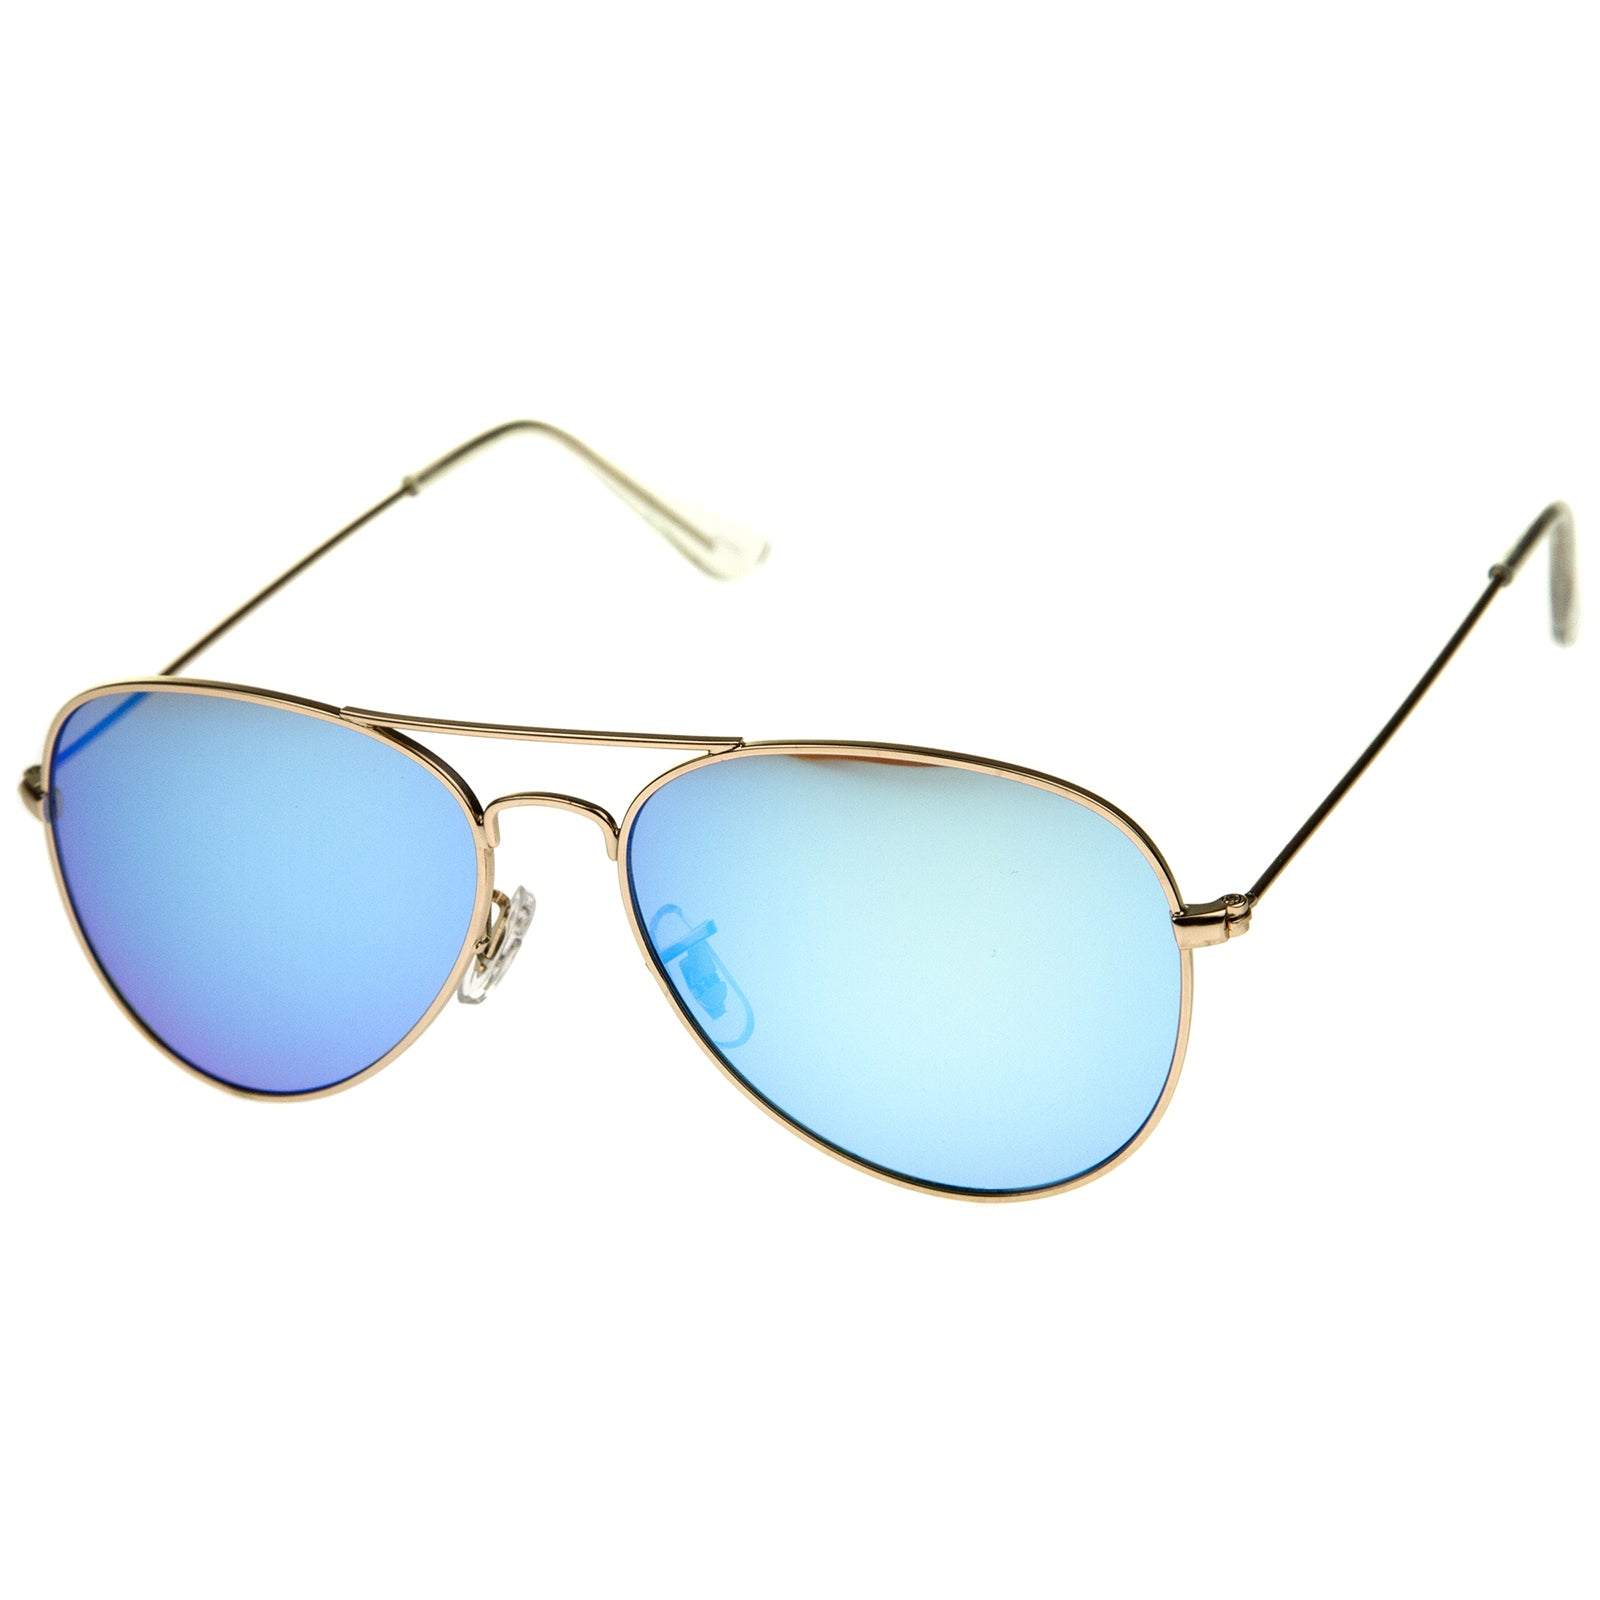 Premium Nickel Plated Frame Multi-Coated Mirror Lens Aviator Sunglasses 59mm - sunglass.la - 2